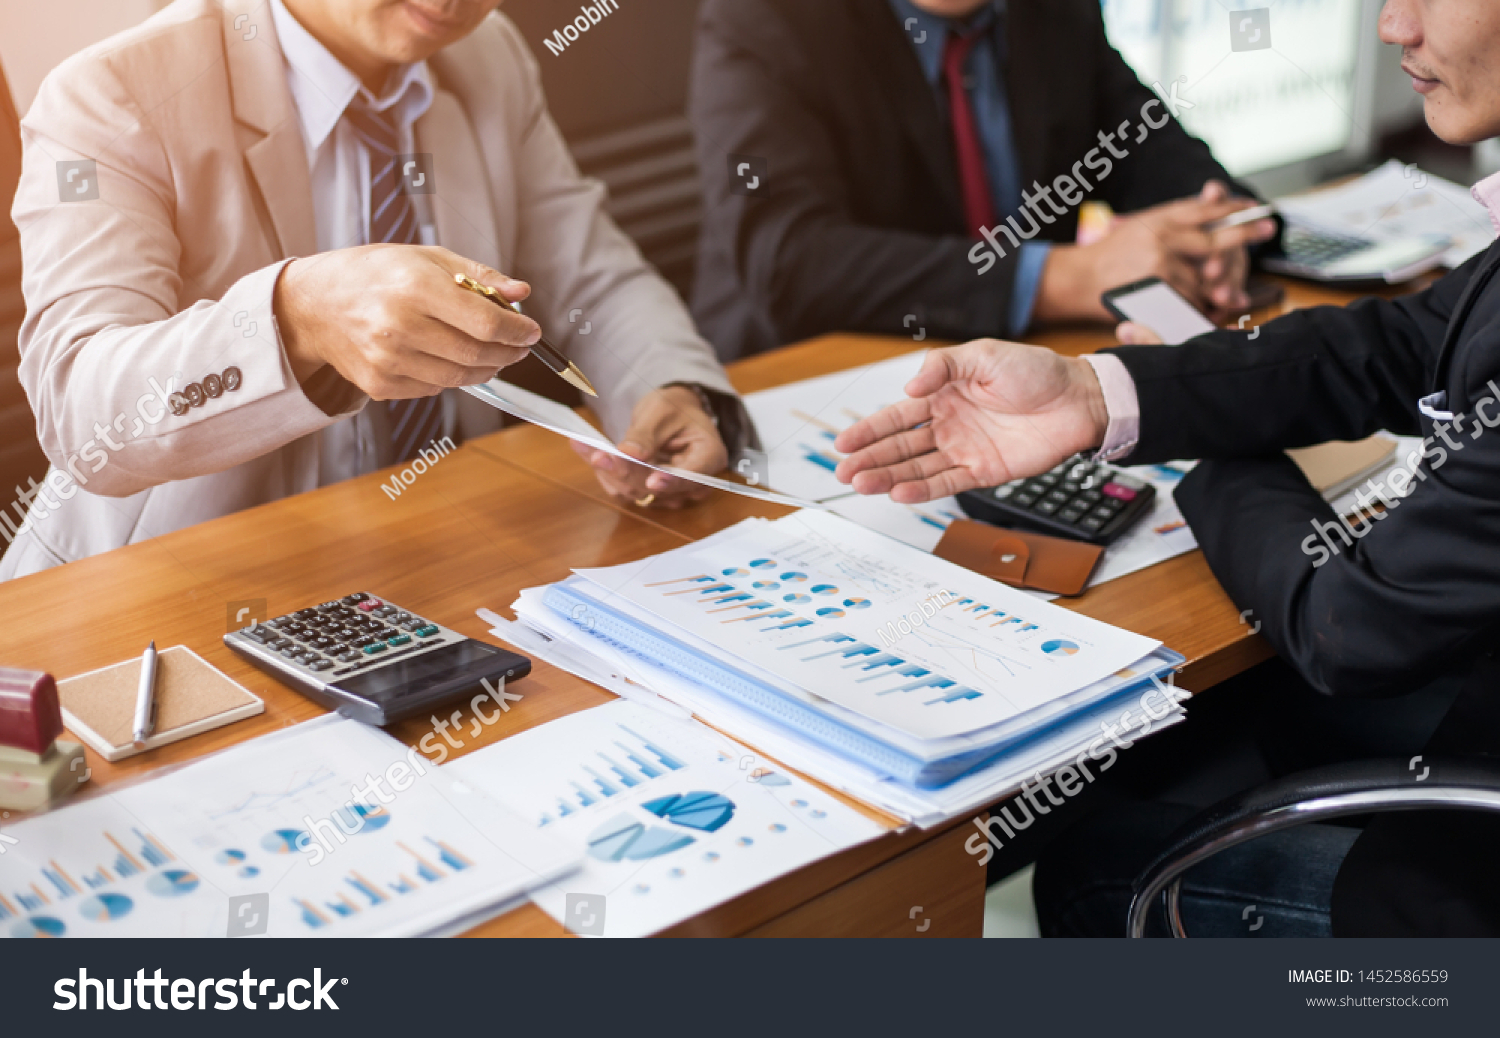 Corporate meetings, Business team organizations and investment plans at working with new startup project with chart,graph and business accessories on workplace. #1452586559